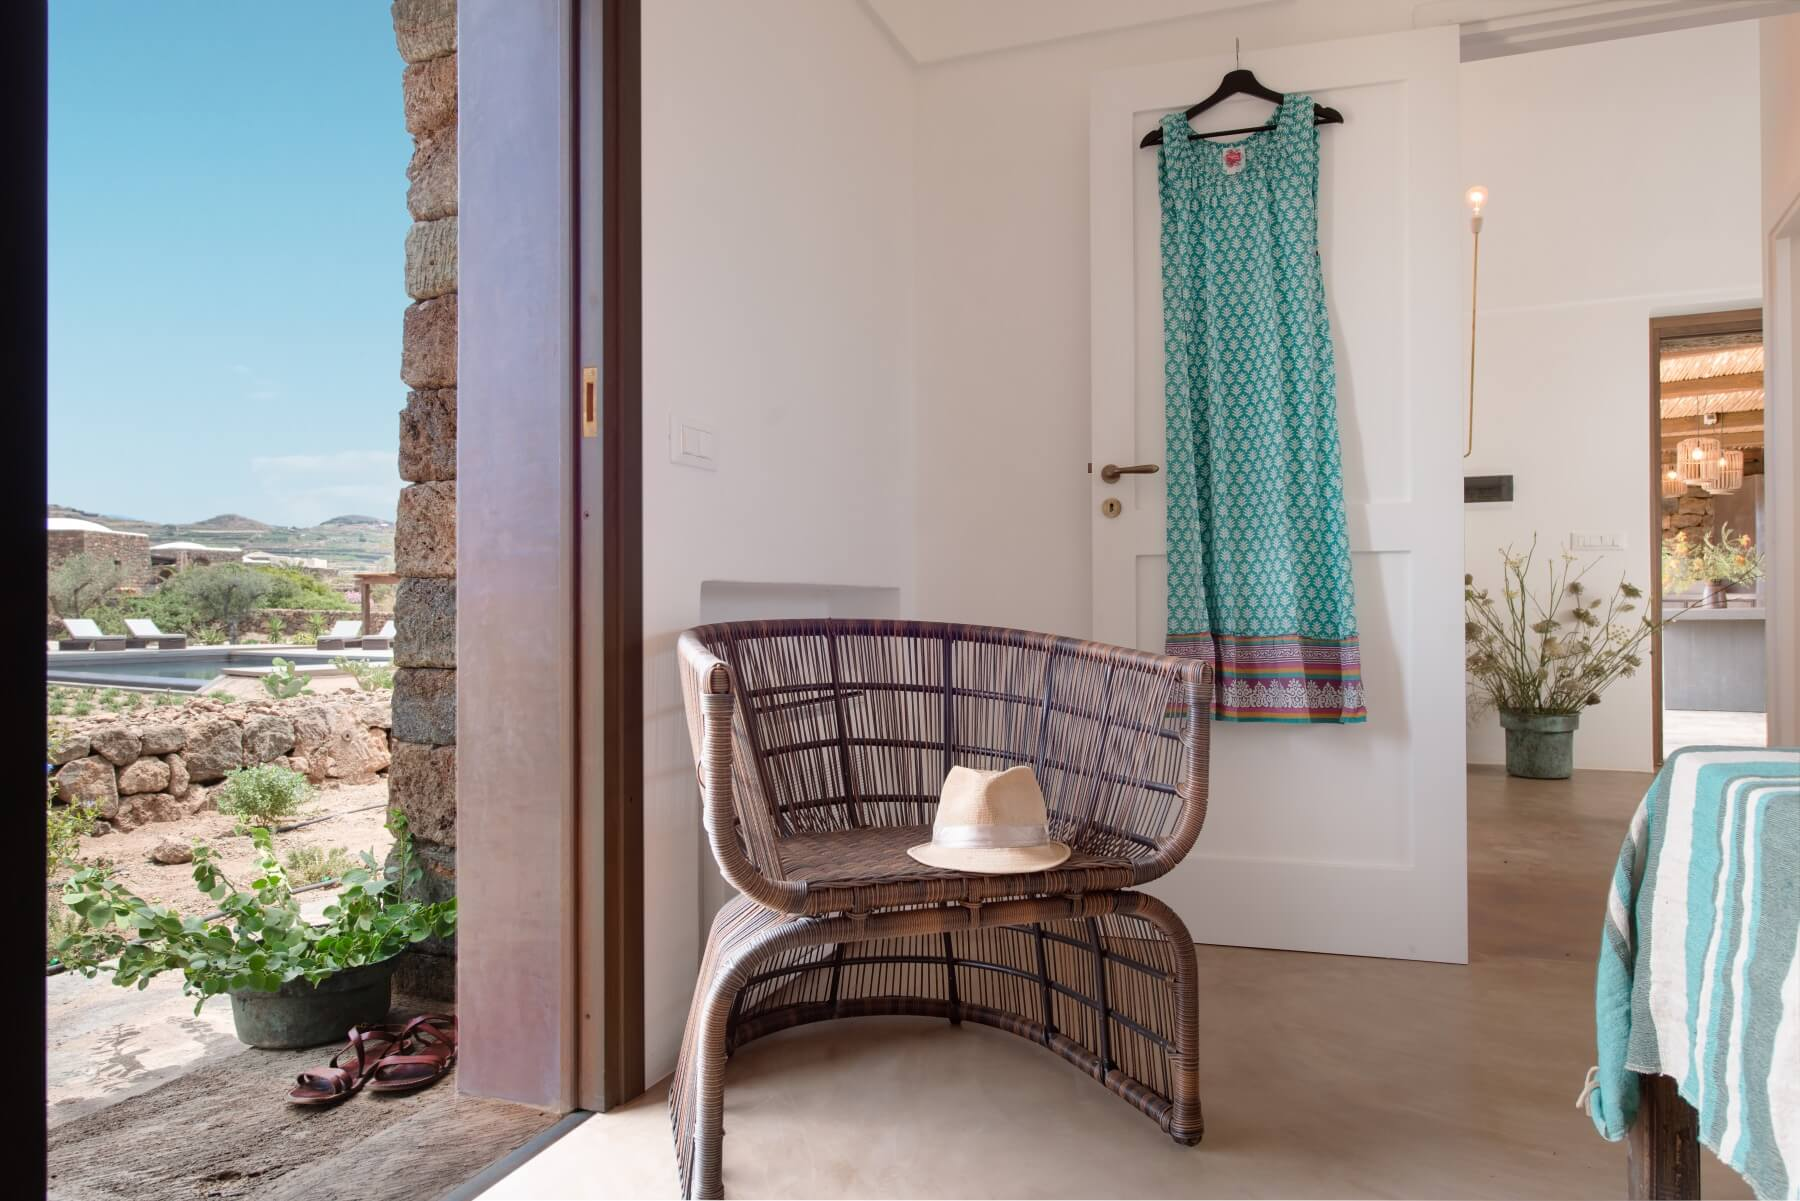 Corte Pantesca II - Paola Gheis Vacation Rental Consulting